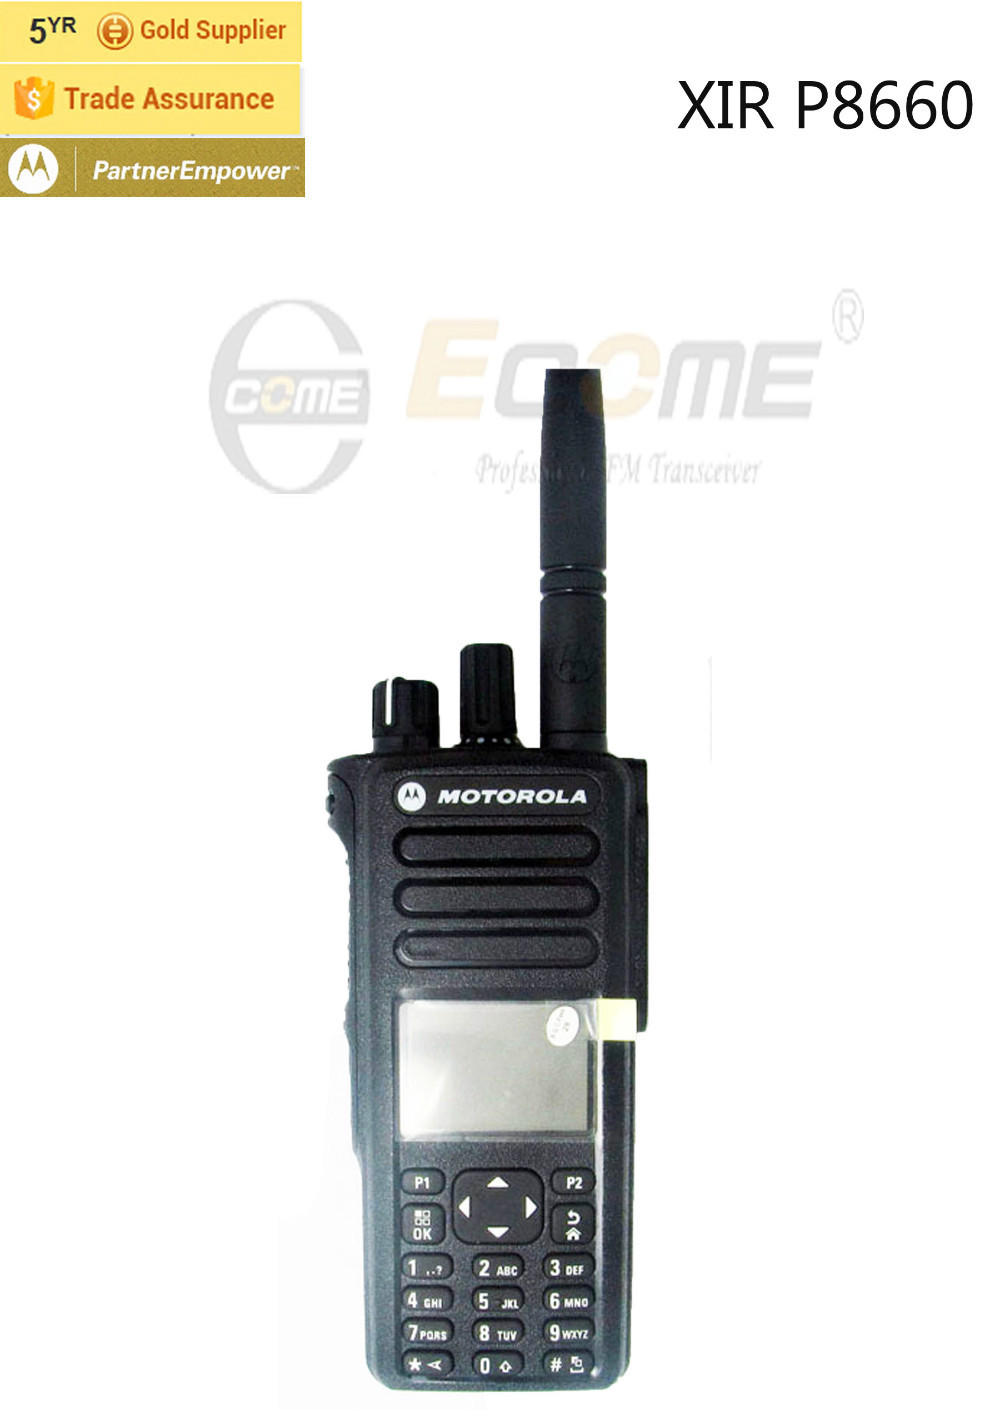 Dual Band UHF VHF Mobile Radio Motorola XIR P8660(China (Mainland))